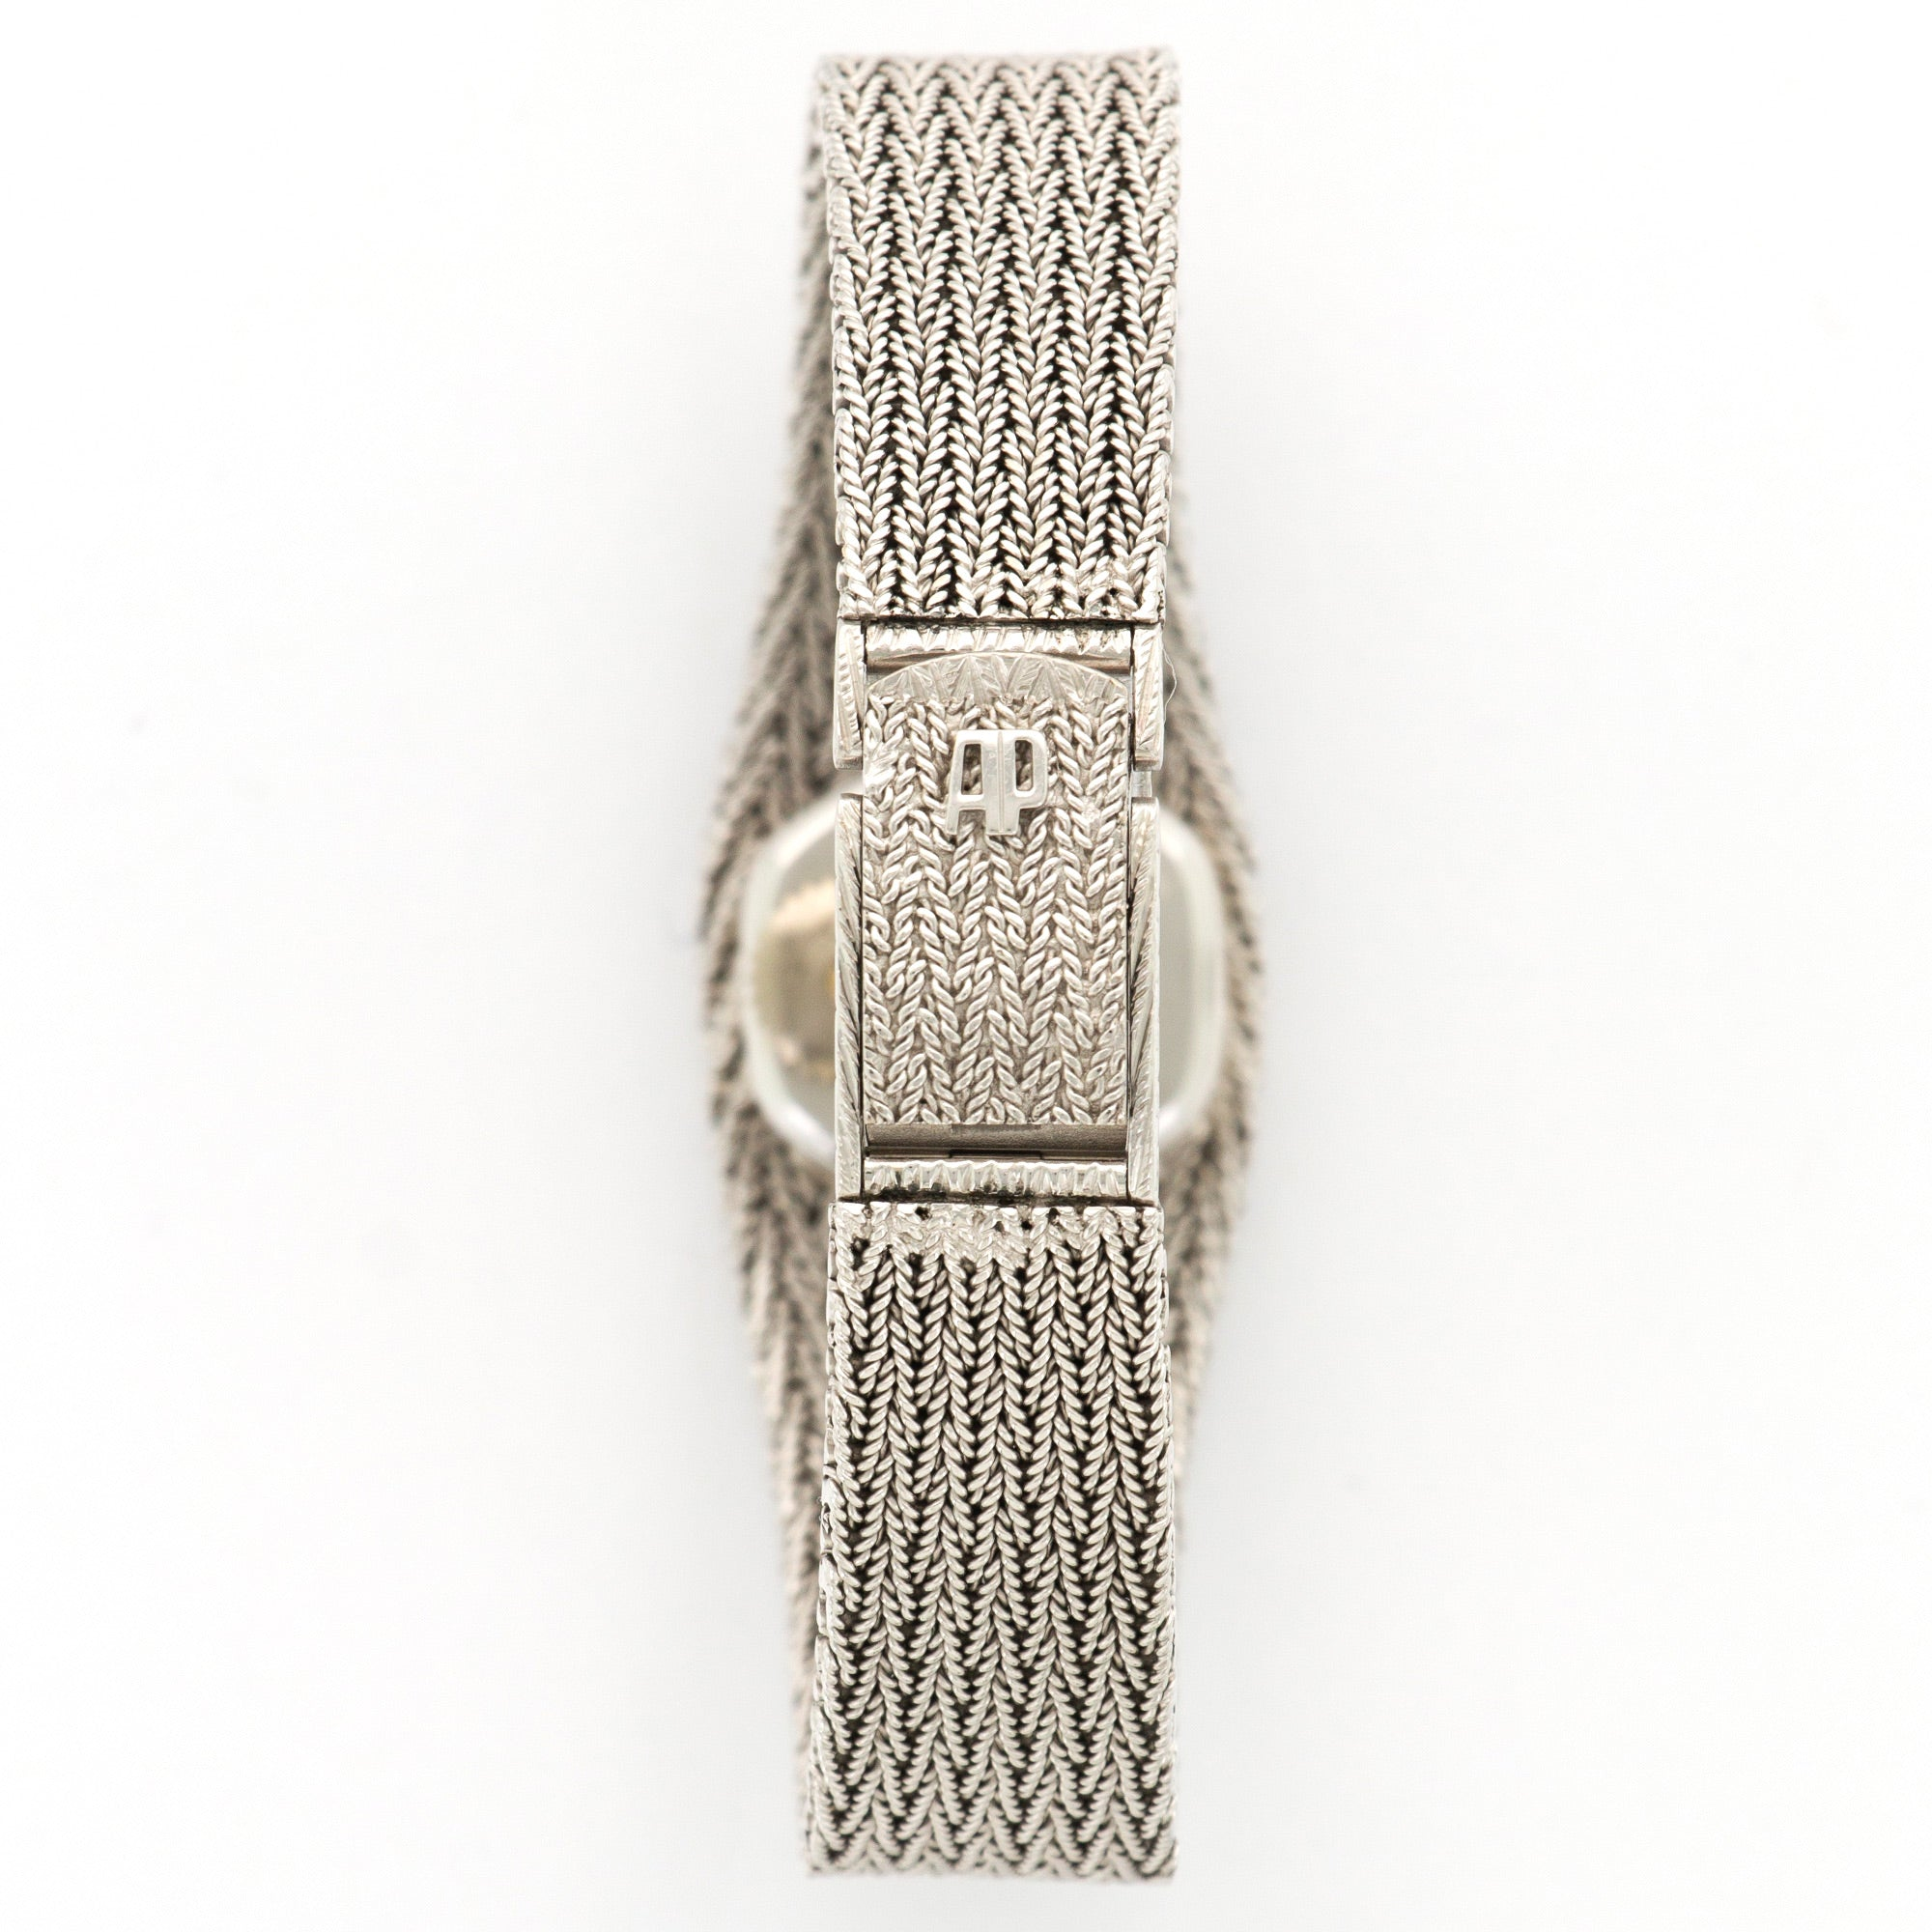 Audemars Piguet Vintage N/A 18k WG  Excellent Ladies 18k WG Silver with Diamond Markers 21mm Back-Wind 1970s White Gold Bracelet Handmade Leather Travel Pouch